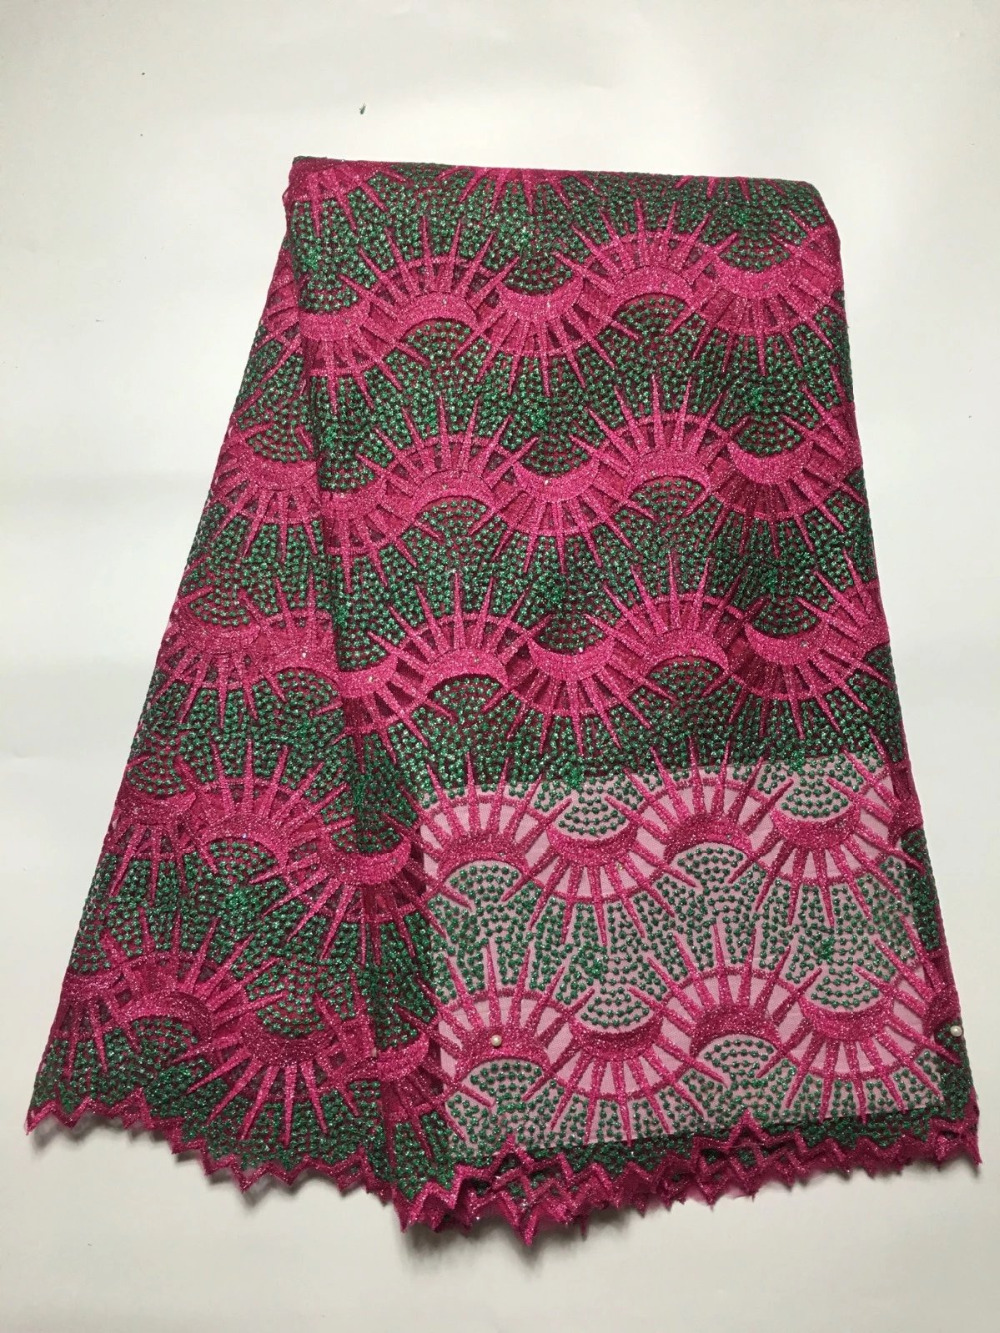 Lace Tribe Wholesale Nigerian Lace Fabric 2016 French Lace Beaded Mesh Tulle French Lace Fabric Latest Net Tulle Lace For Women JYF57